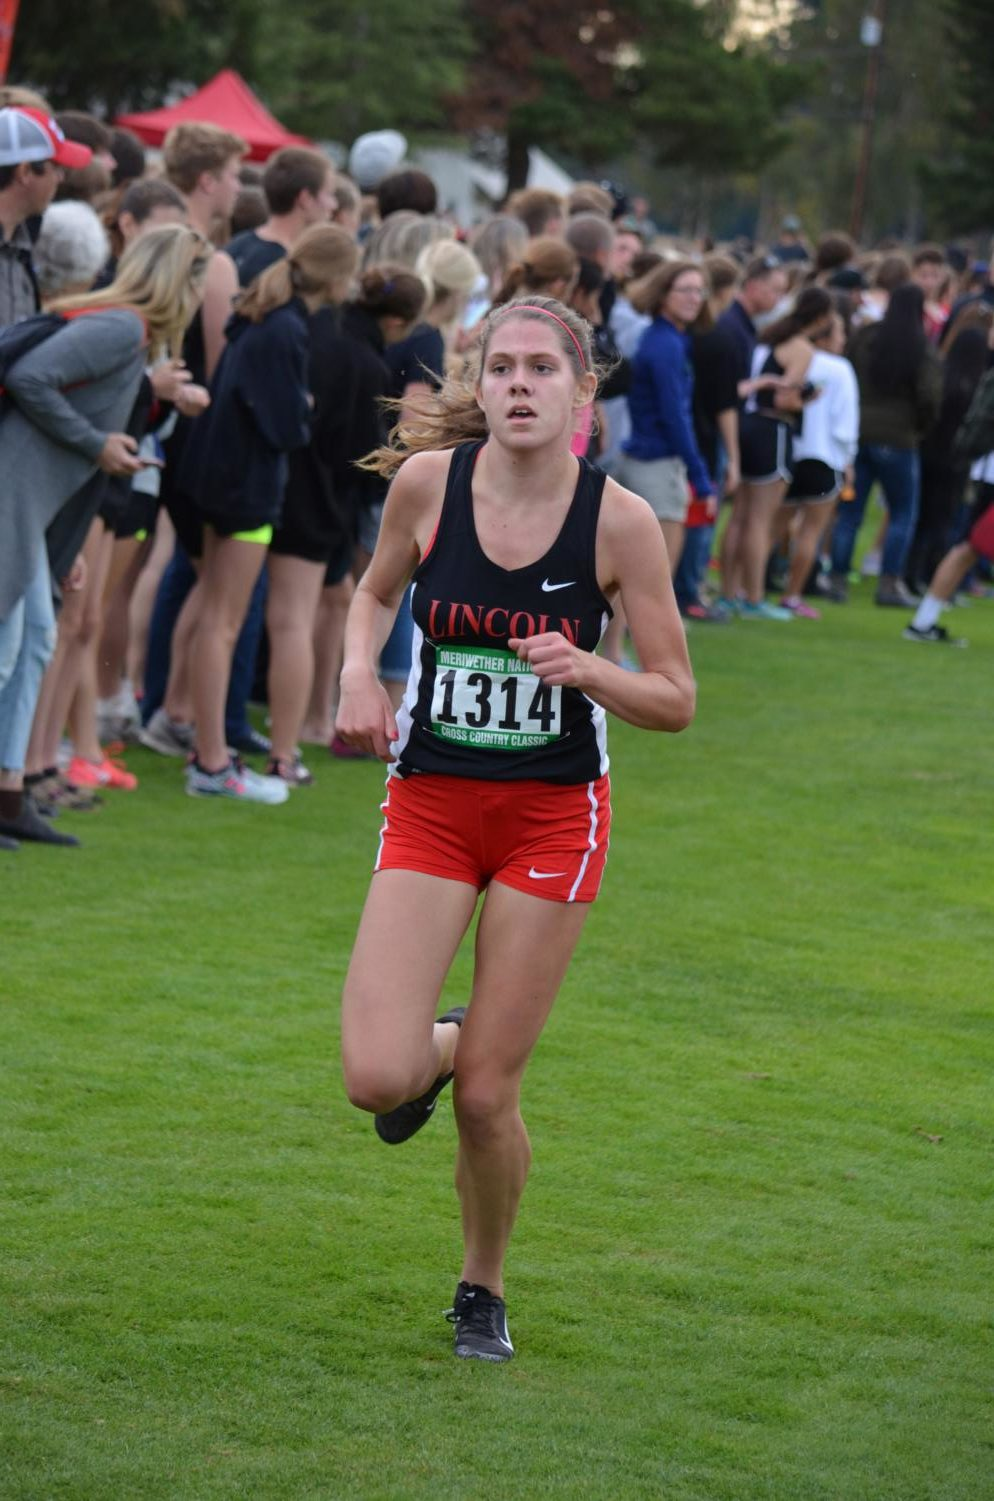 Ellie Kobak runs cross-country at the Meriwether Classic on Sept. 22. Kobak has overcome her own hearing loss to help others, recently winning a national award for her efforts.